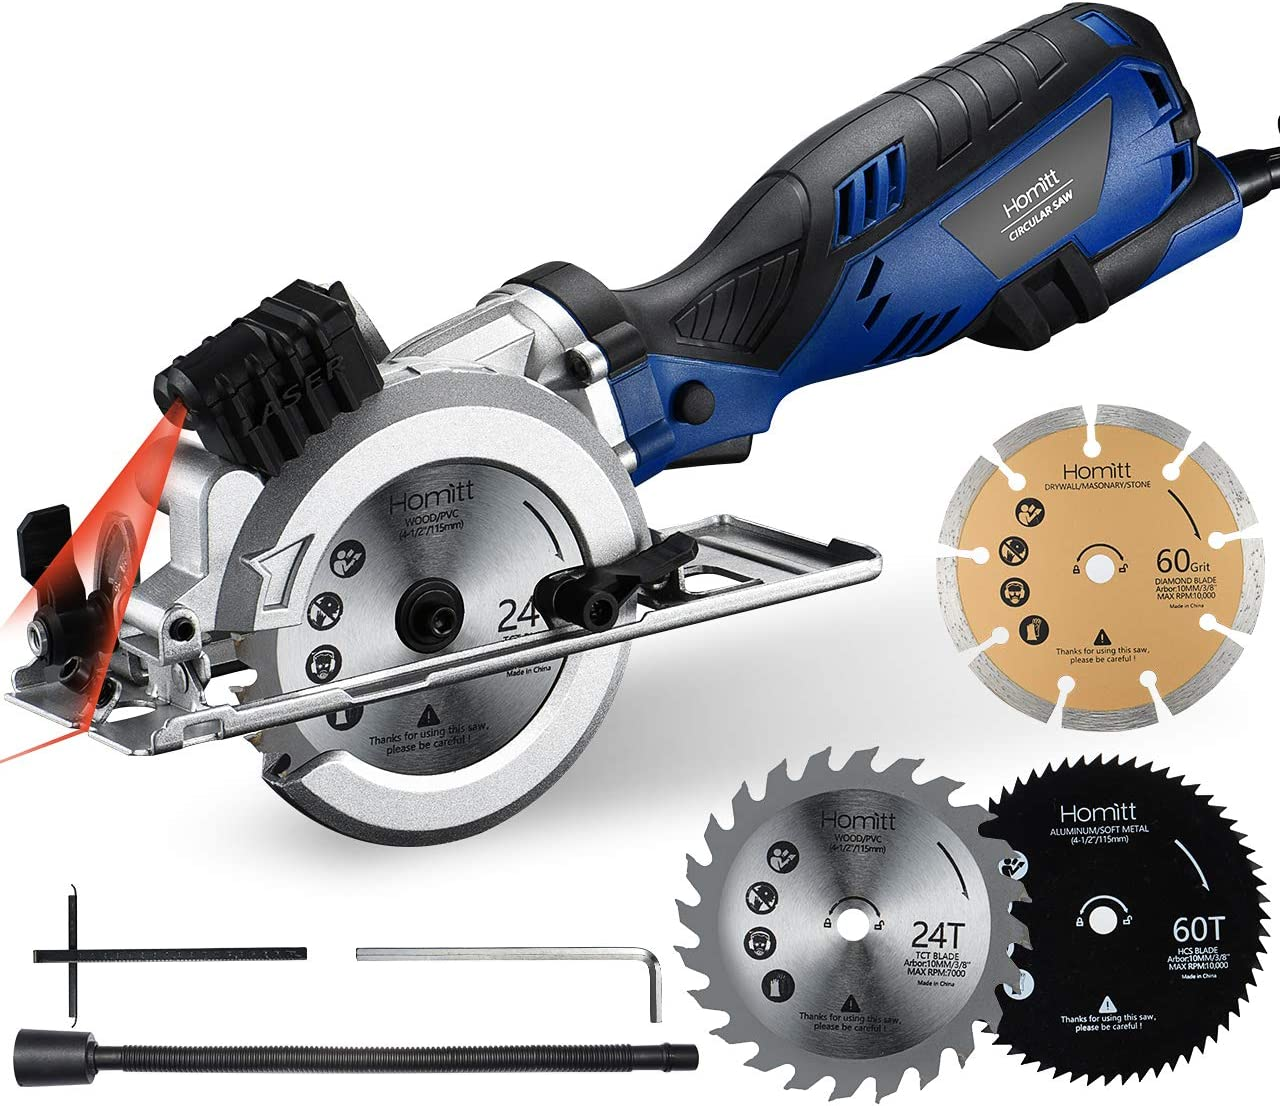 "Circular Saw, Homitt 5.8A 3500RPM Compact Saw with Laser Guide, 3 Saw Blades(4-1/2""), Max Cutting Depth 1-11/16""(90°), 1-1/8""(45°), Ideal for Soft Metal, PVC, Wood, Tile and Plastic Cuts"